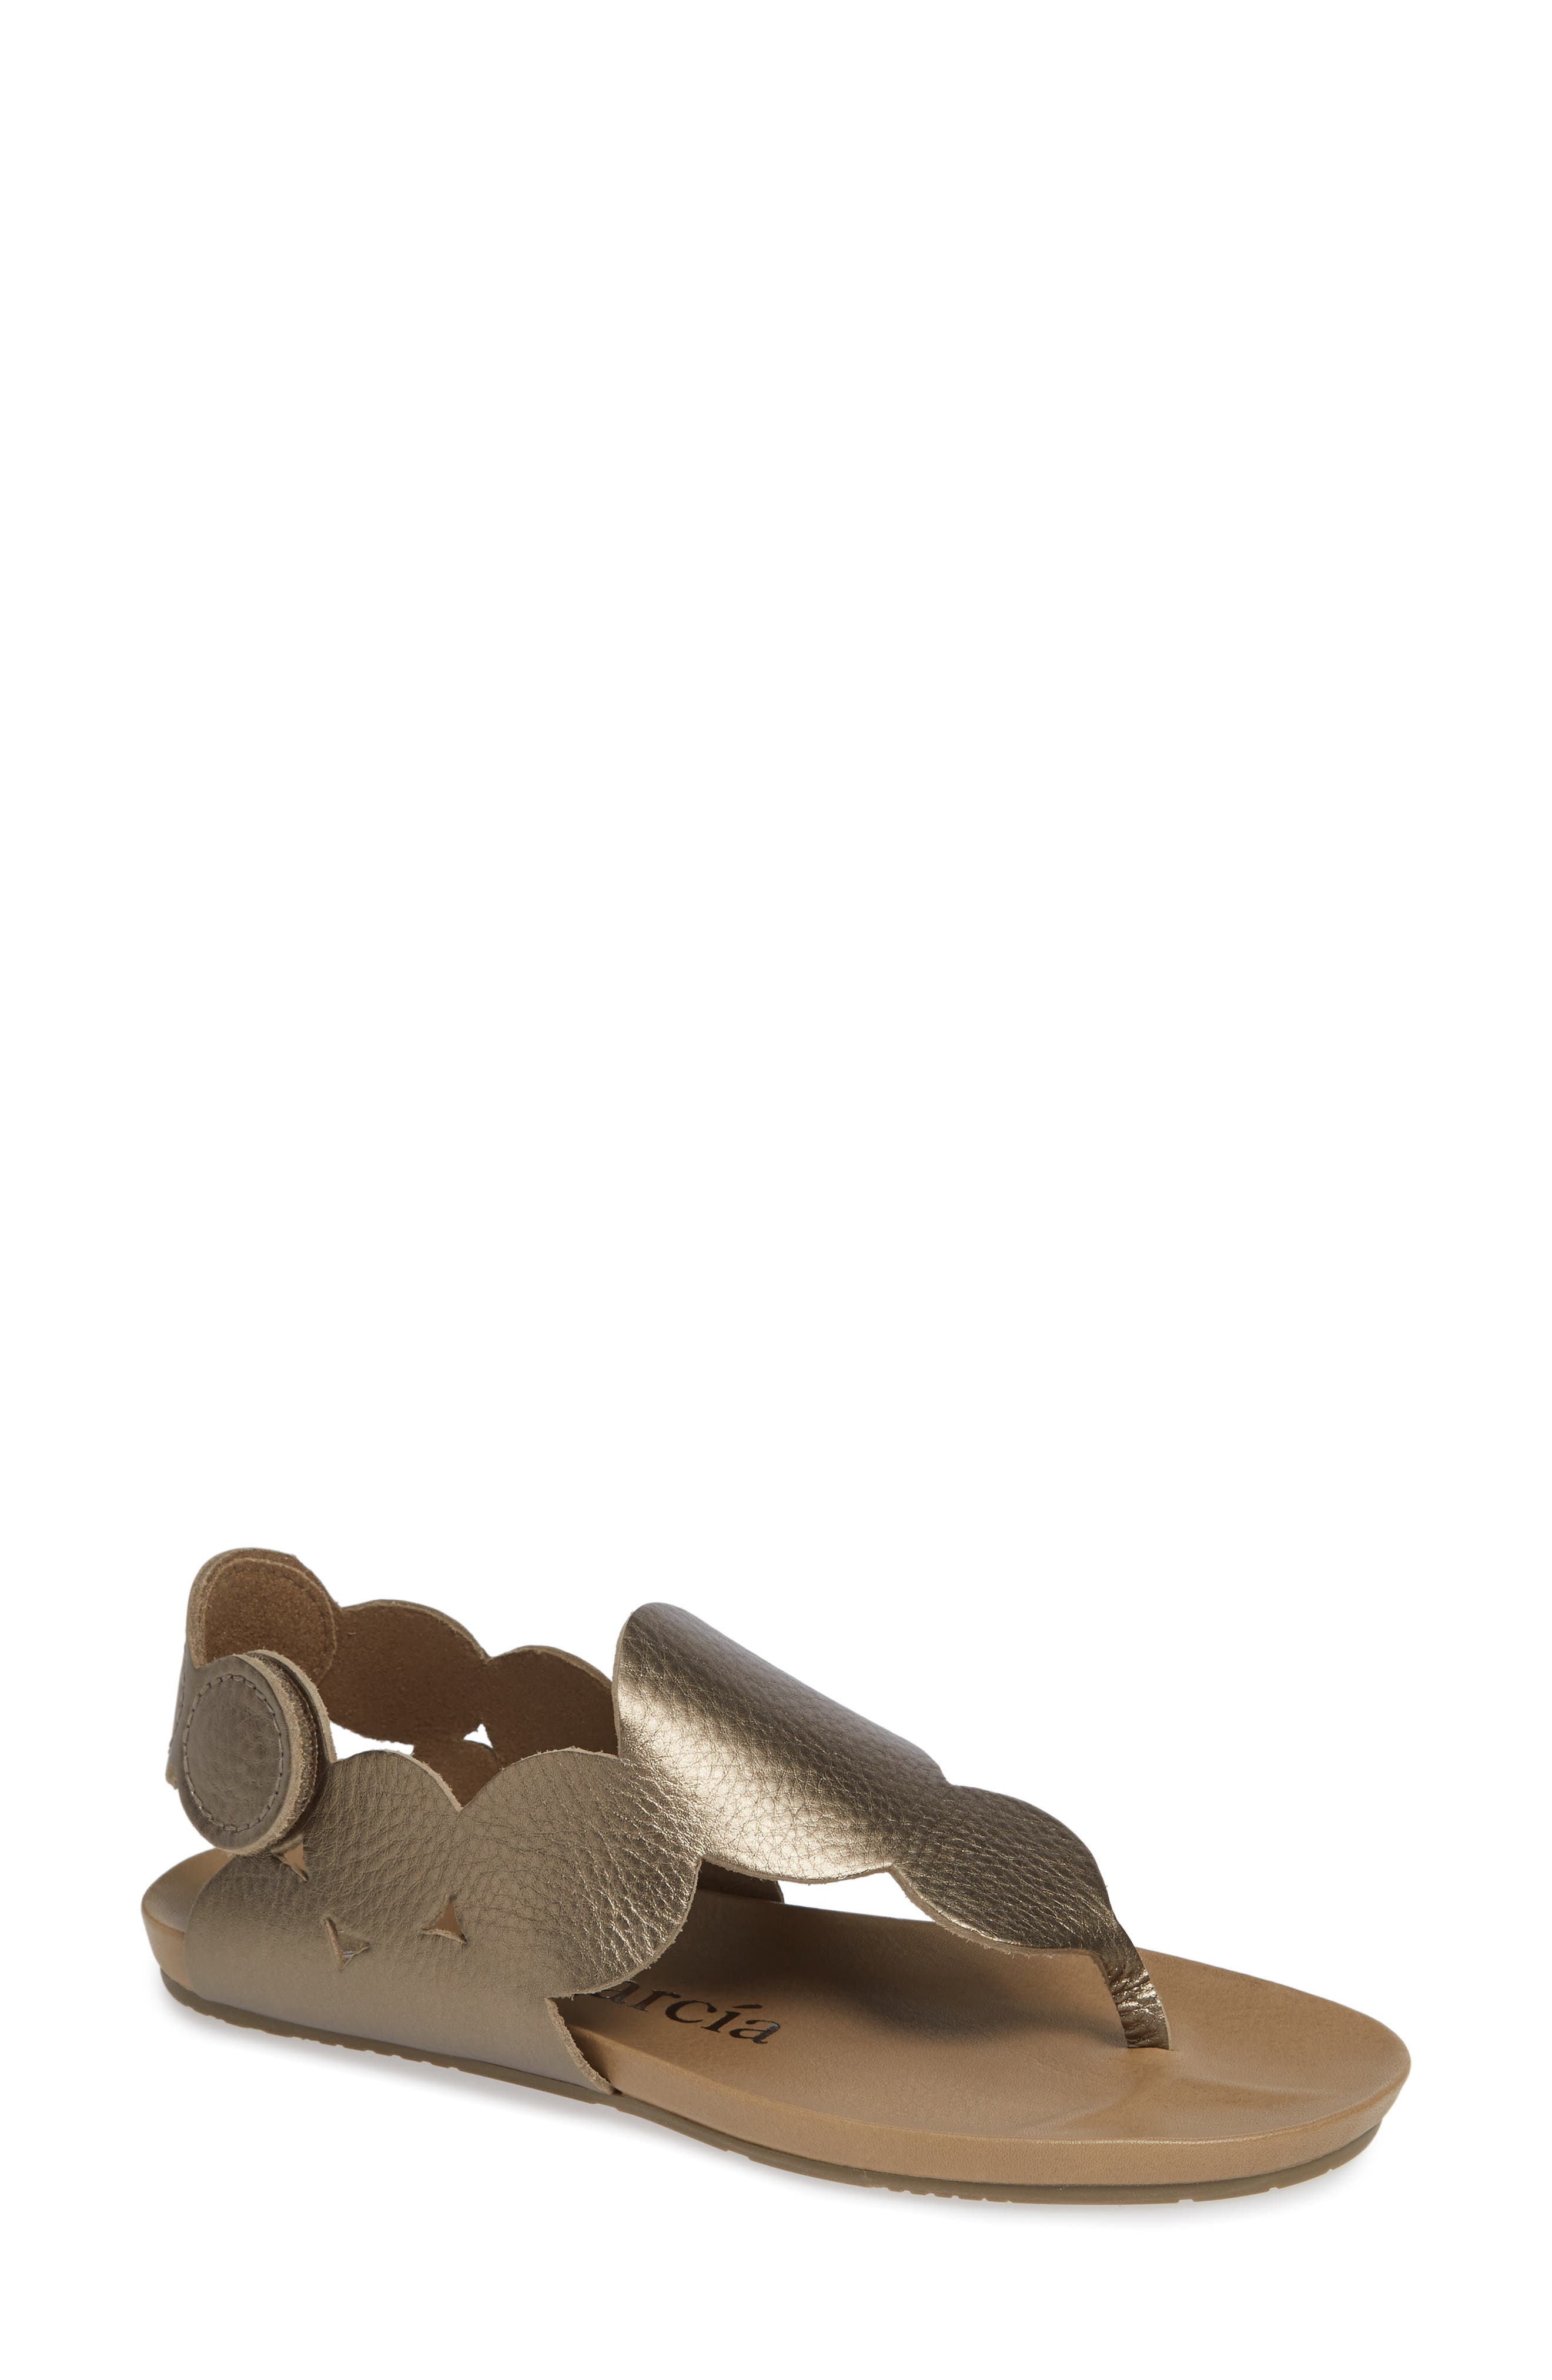 PEDRO GARCIA Jamee Sandal, Main, color, BARK CERVO LAME